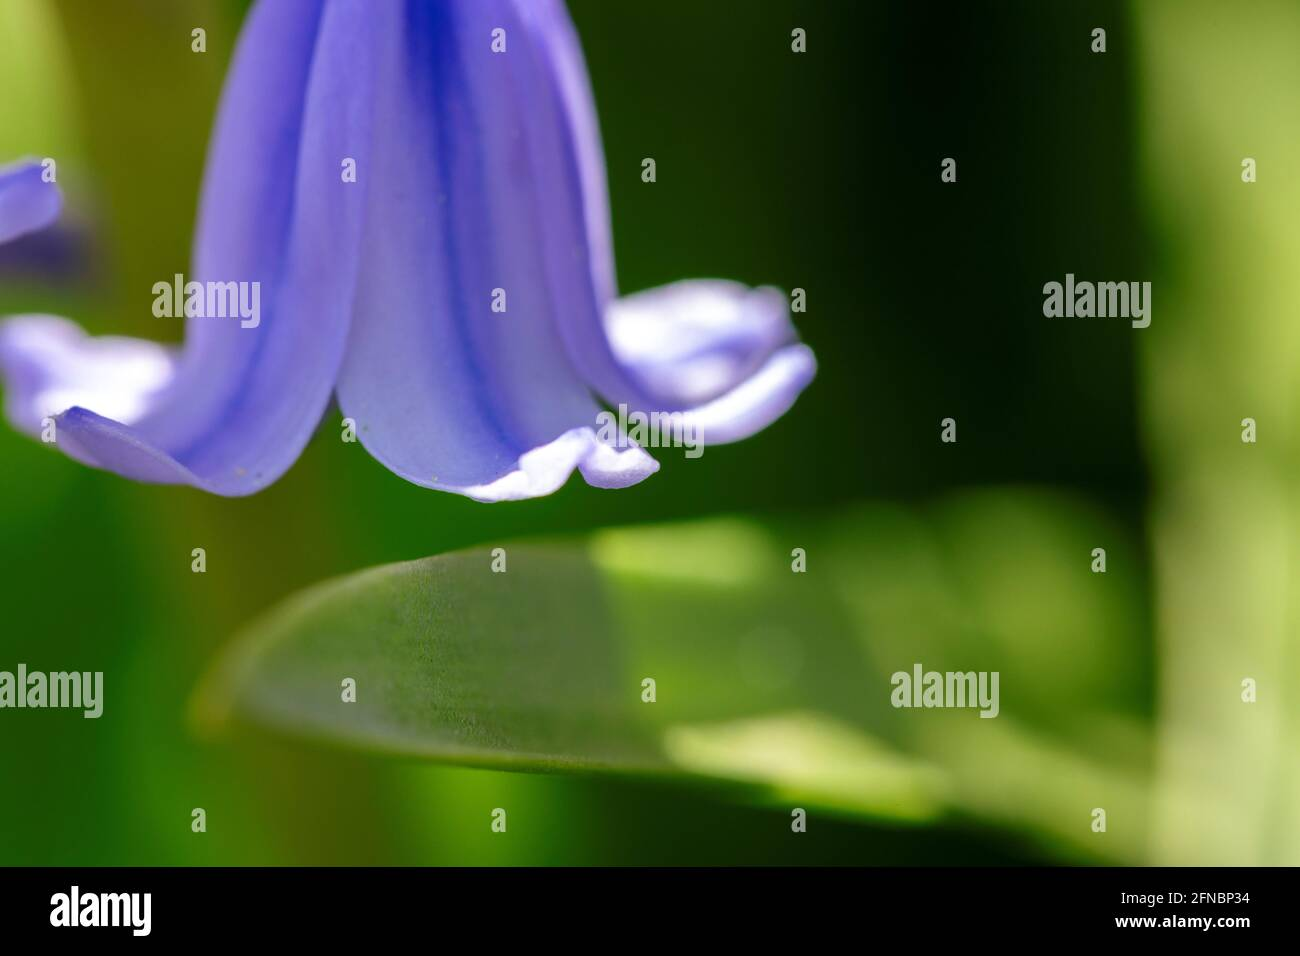 A portrait of a petal of a wild hyacinth, also known as a common bluebell flower, in a garden. The latin name of the plant is hyacinthoides non-script Stock Photo